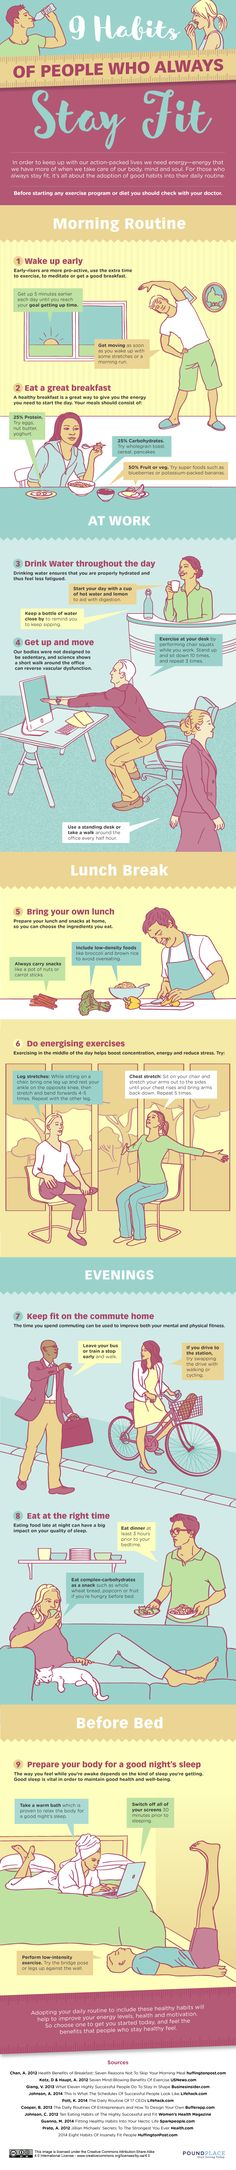 9 Habits Of People Who Always Stay Fit #Infographic #Fitness #LifeStyle